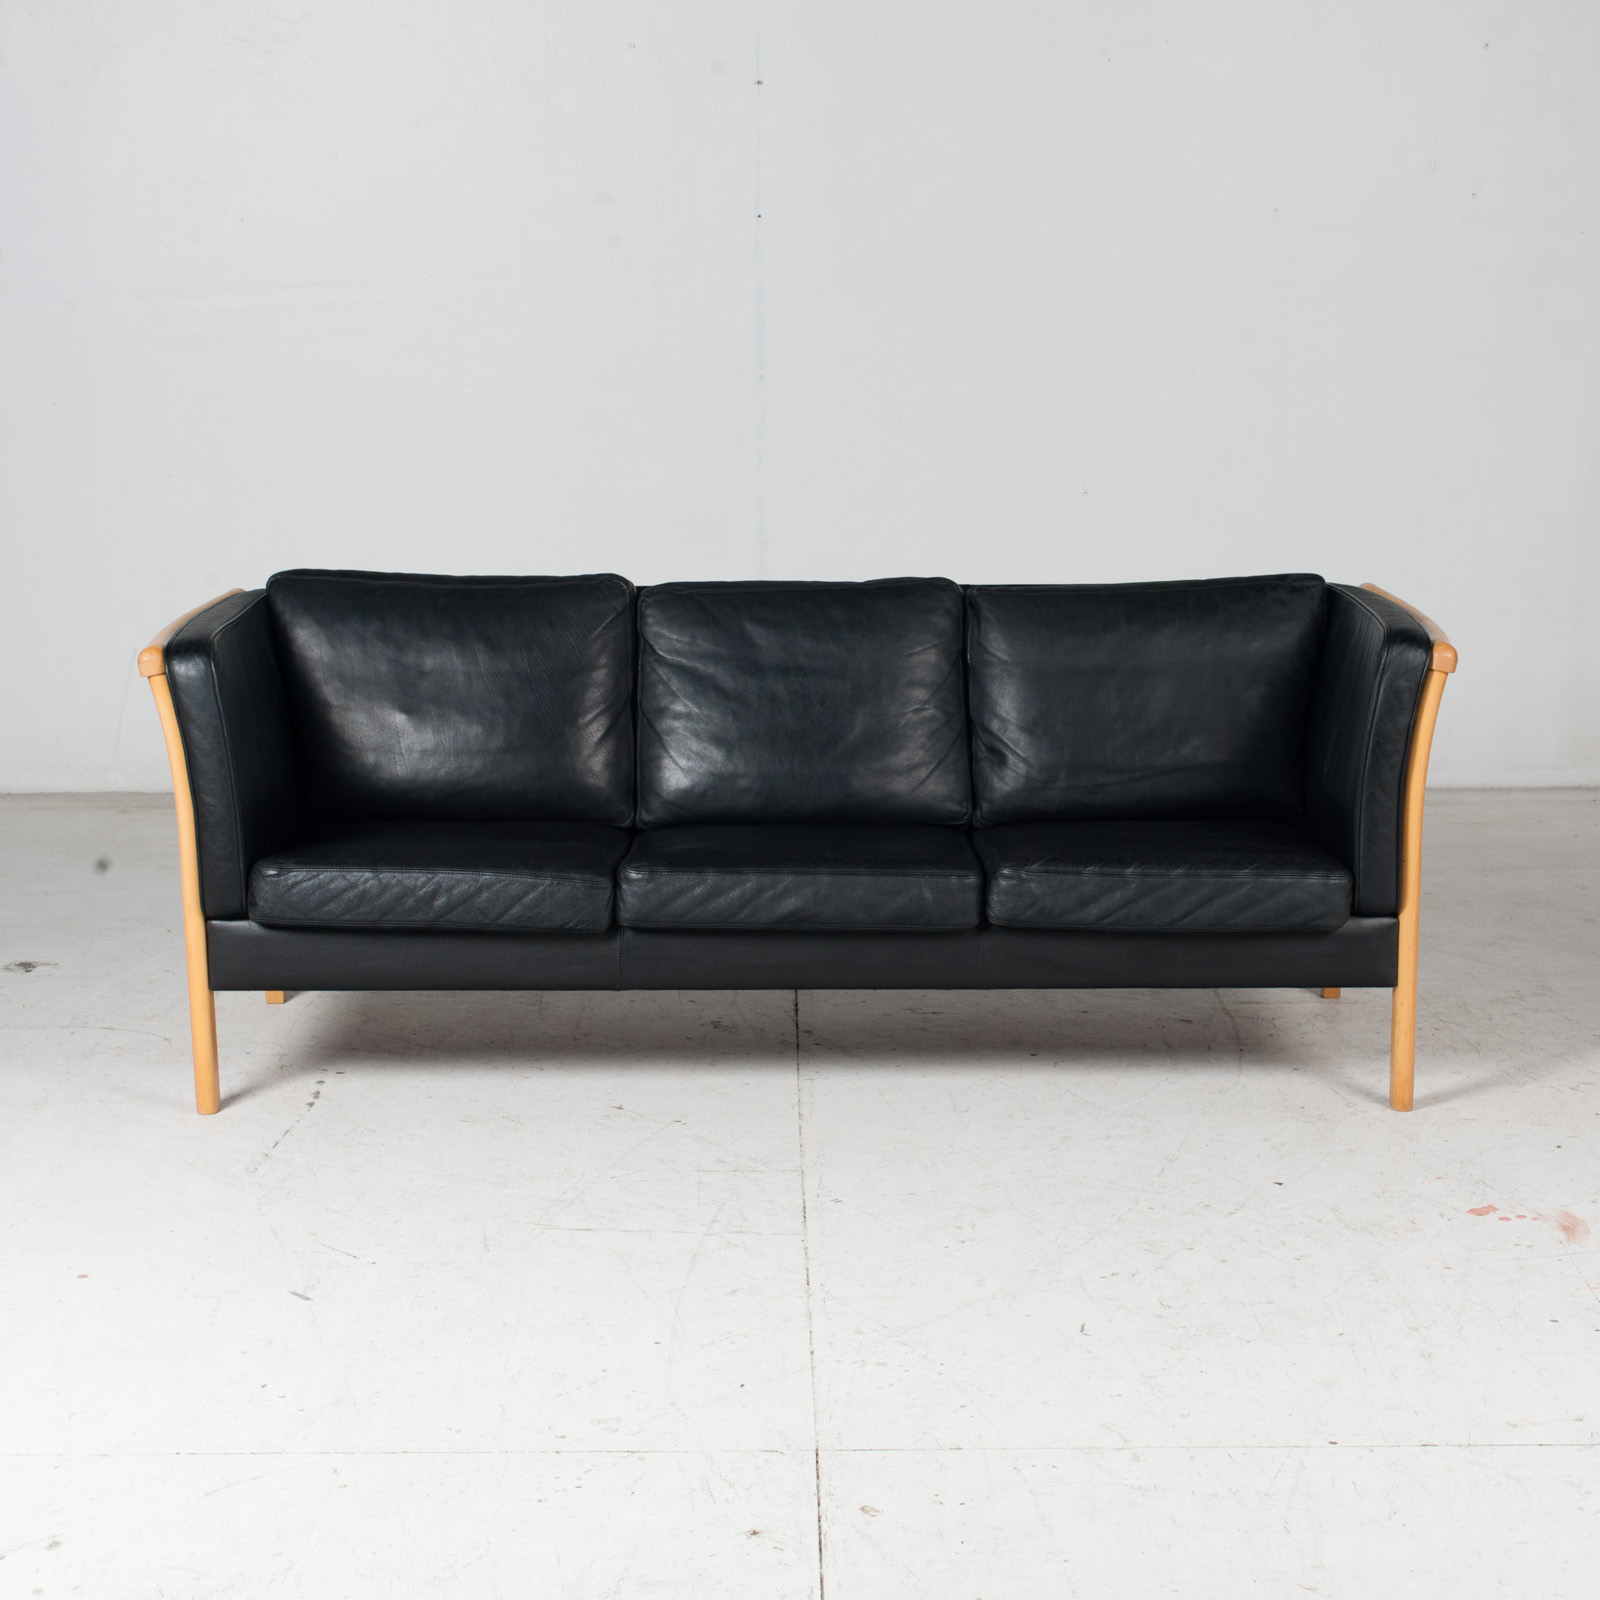 3 Seat Sofa By Stouby In Black Leather, 1960s, Denmark 3